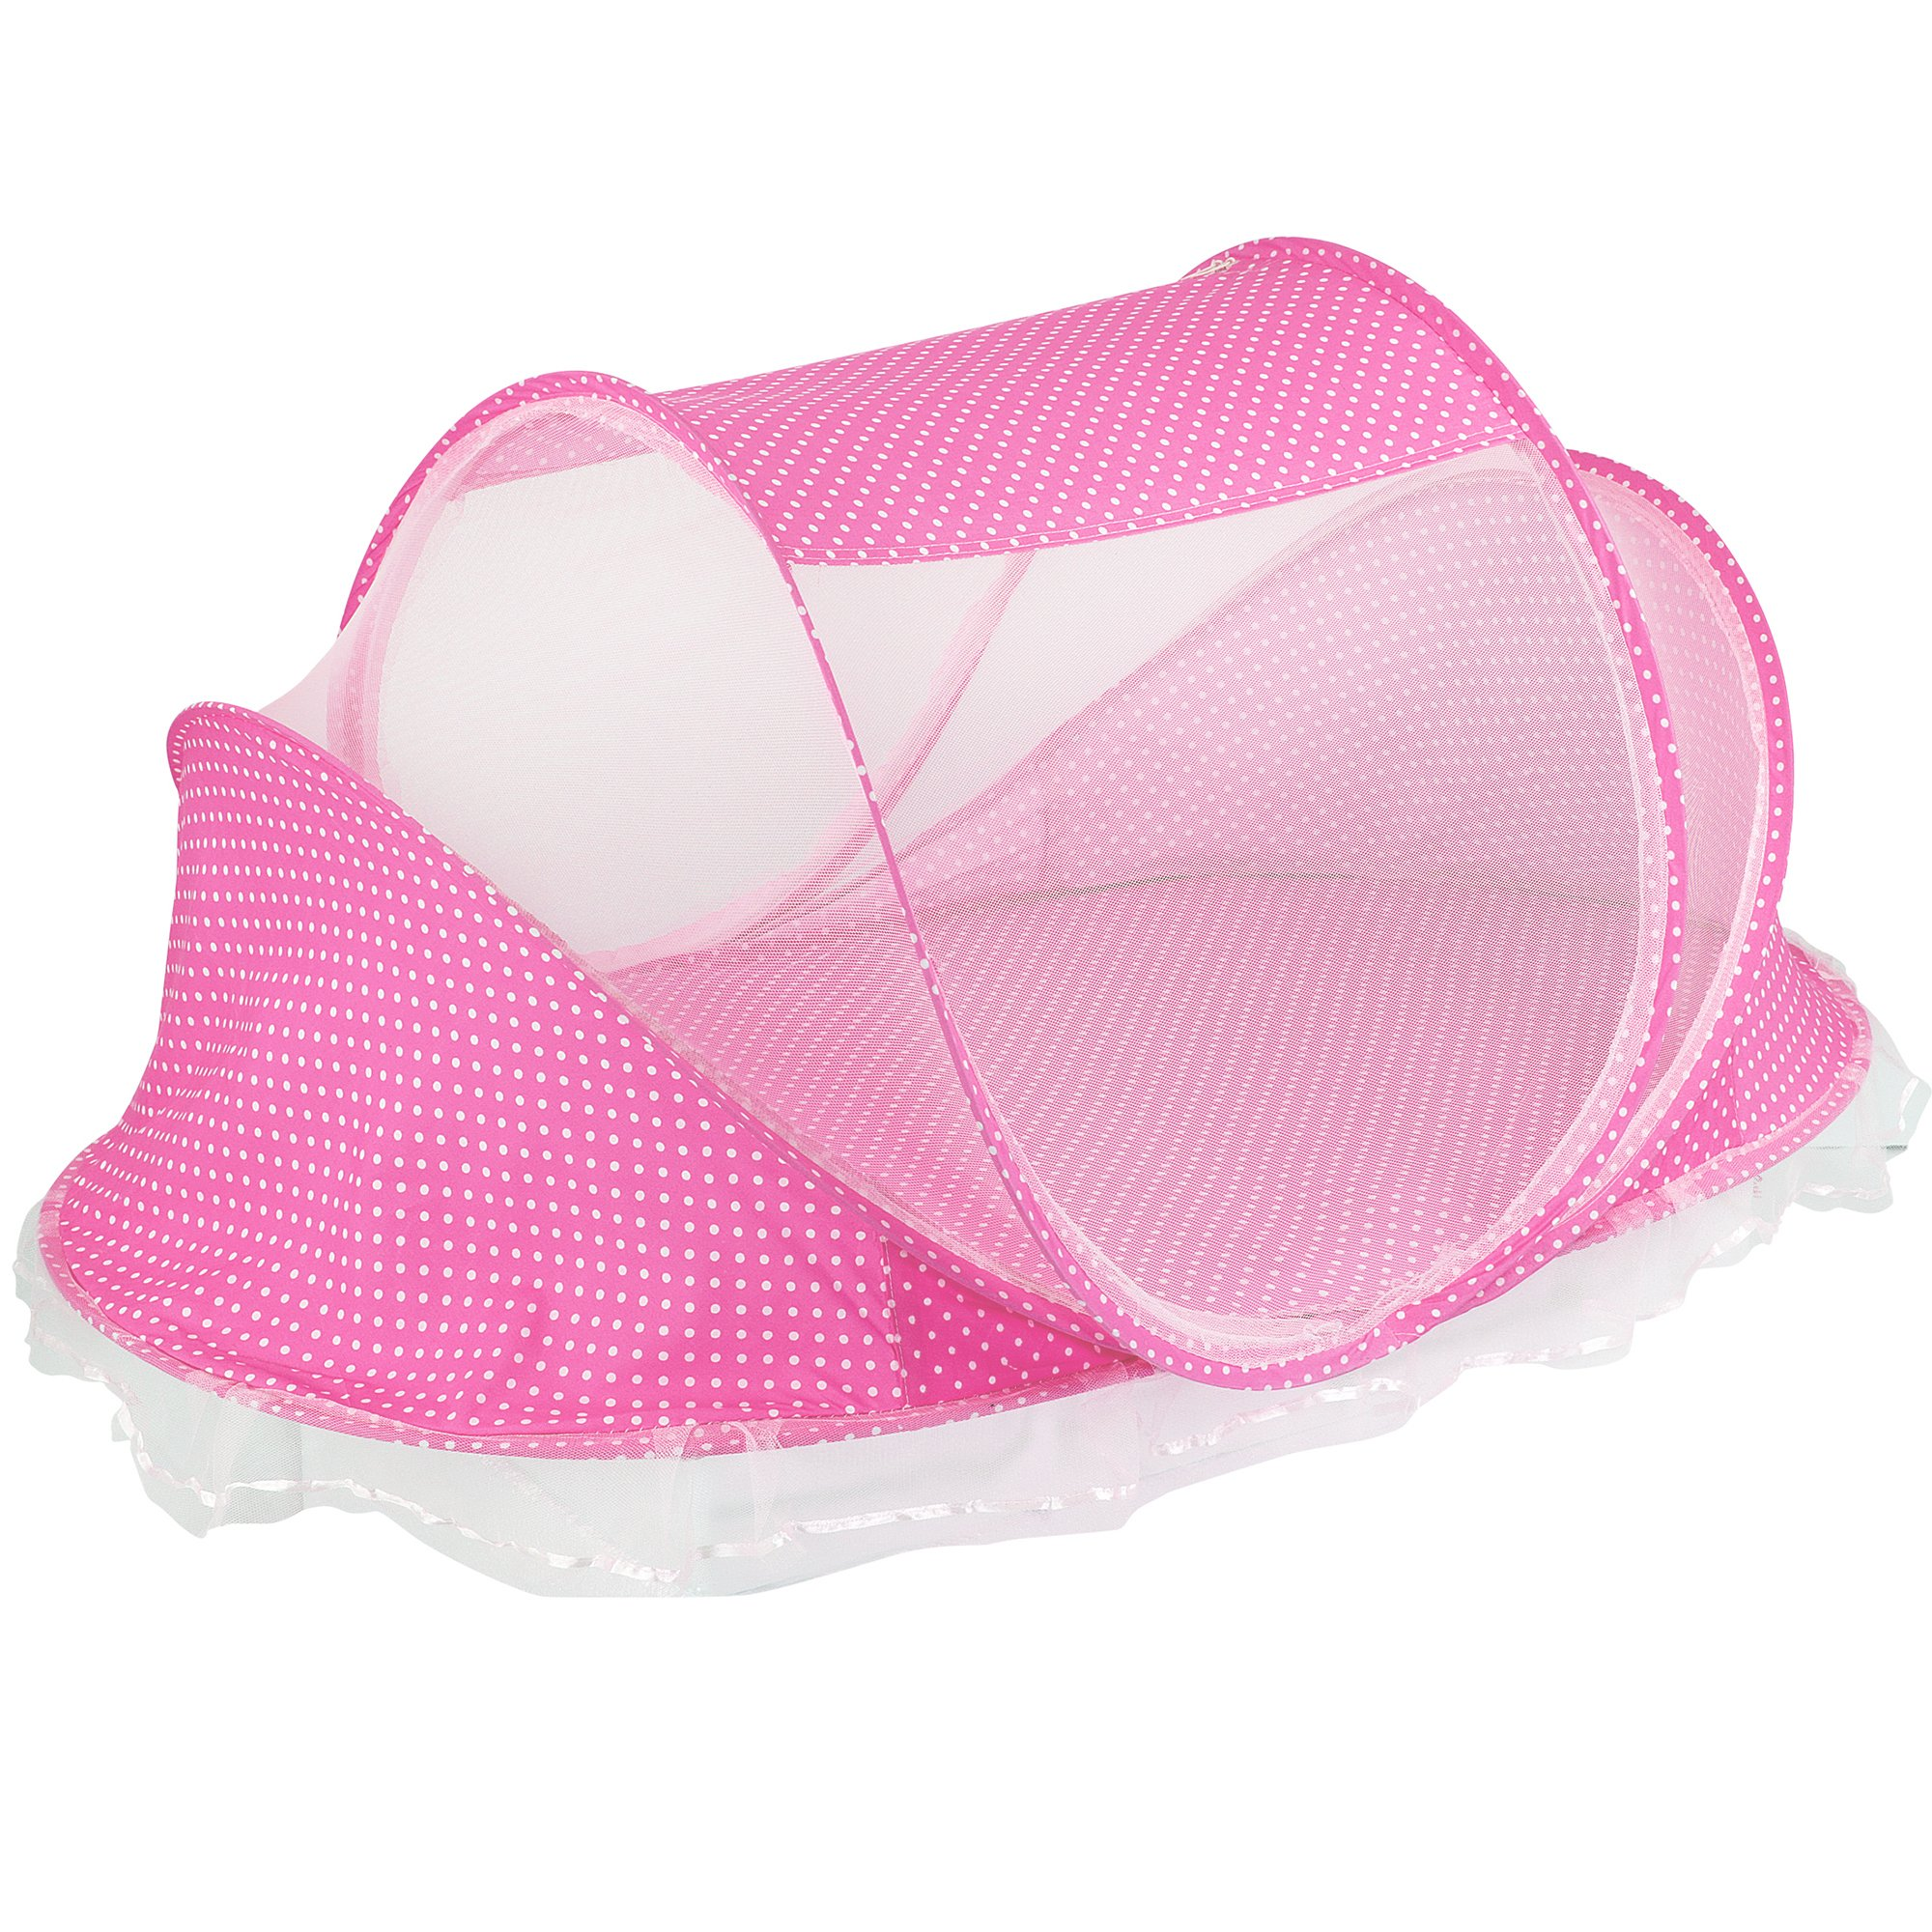 N.C. Products Baby Travel Bed, Portable Travel Beach Tent, Pink Pop-Up Beach Tent Protect from Sun, Mosquitos & Bugs by N.C. Products